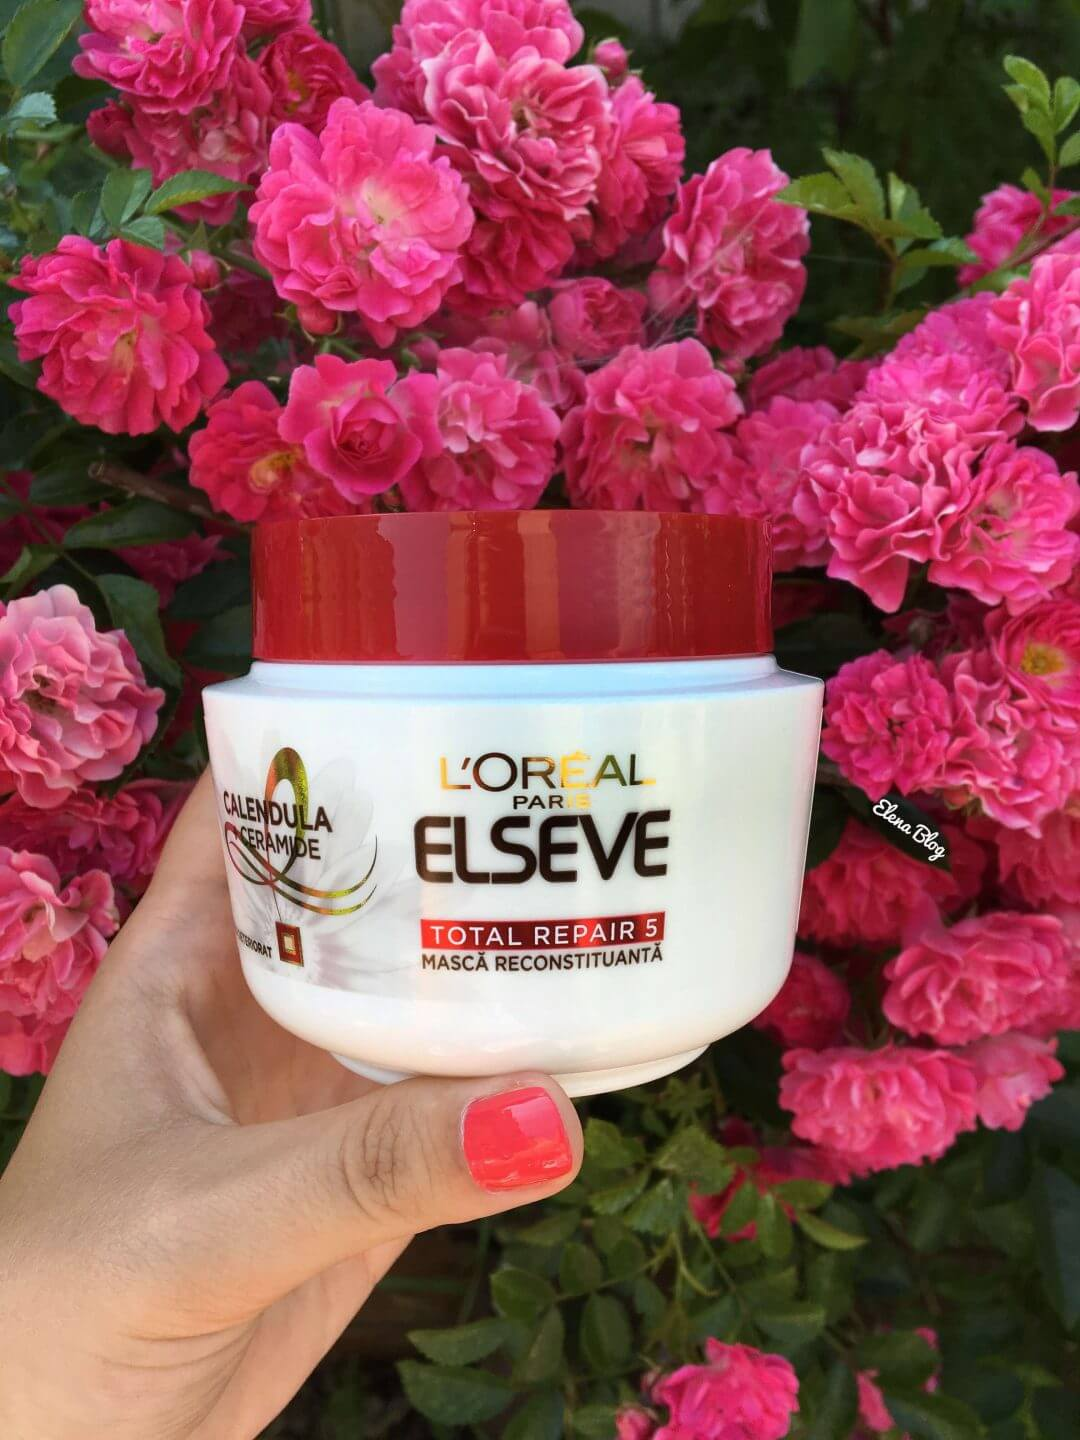 L'Oréal Paris Elseve Total Repair 5